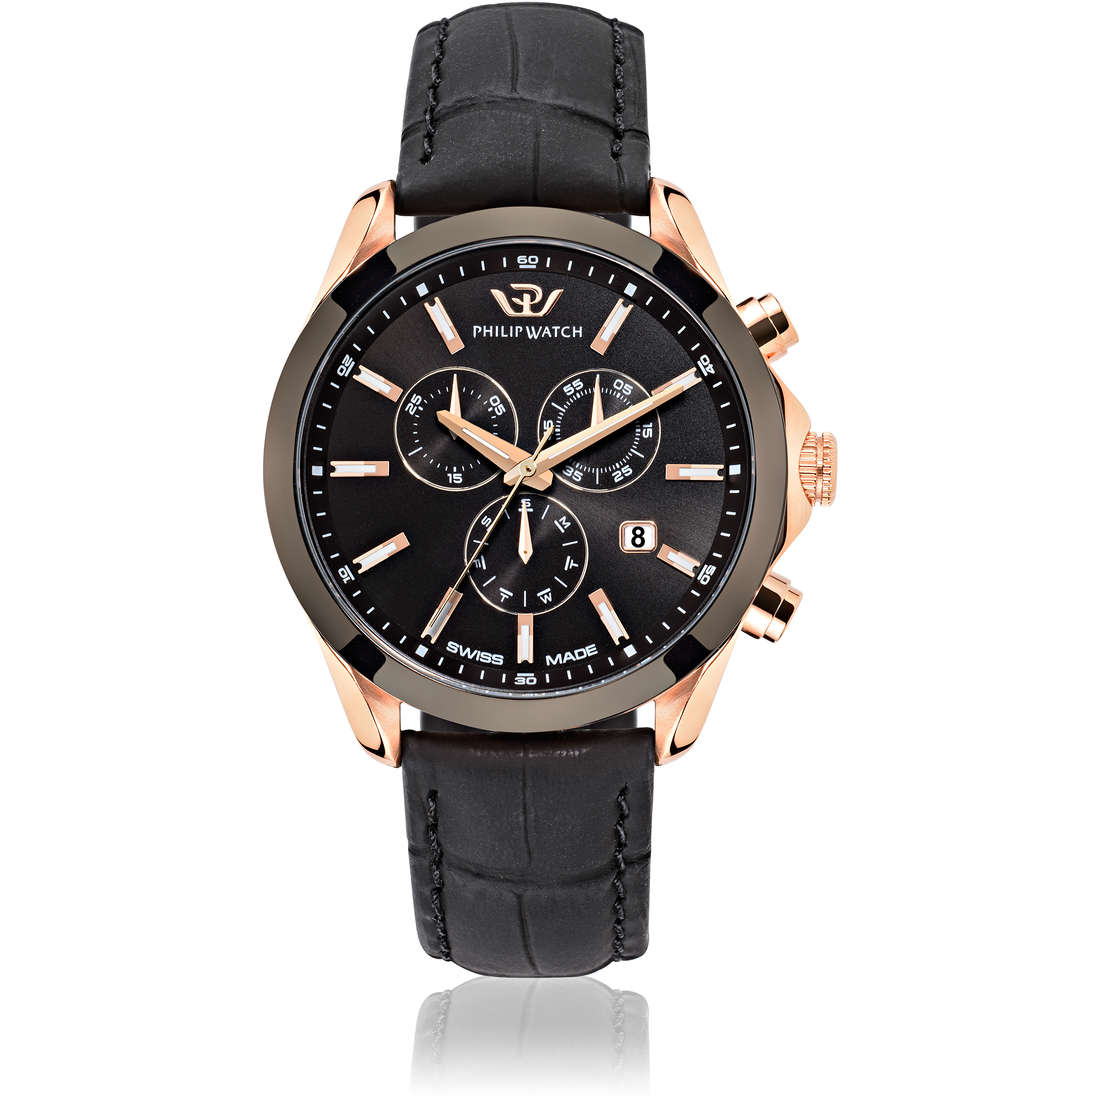 watch chronograph man Philip Watch Blaze R8271665005